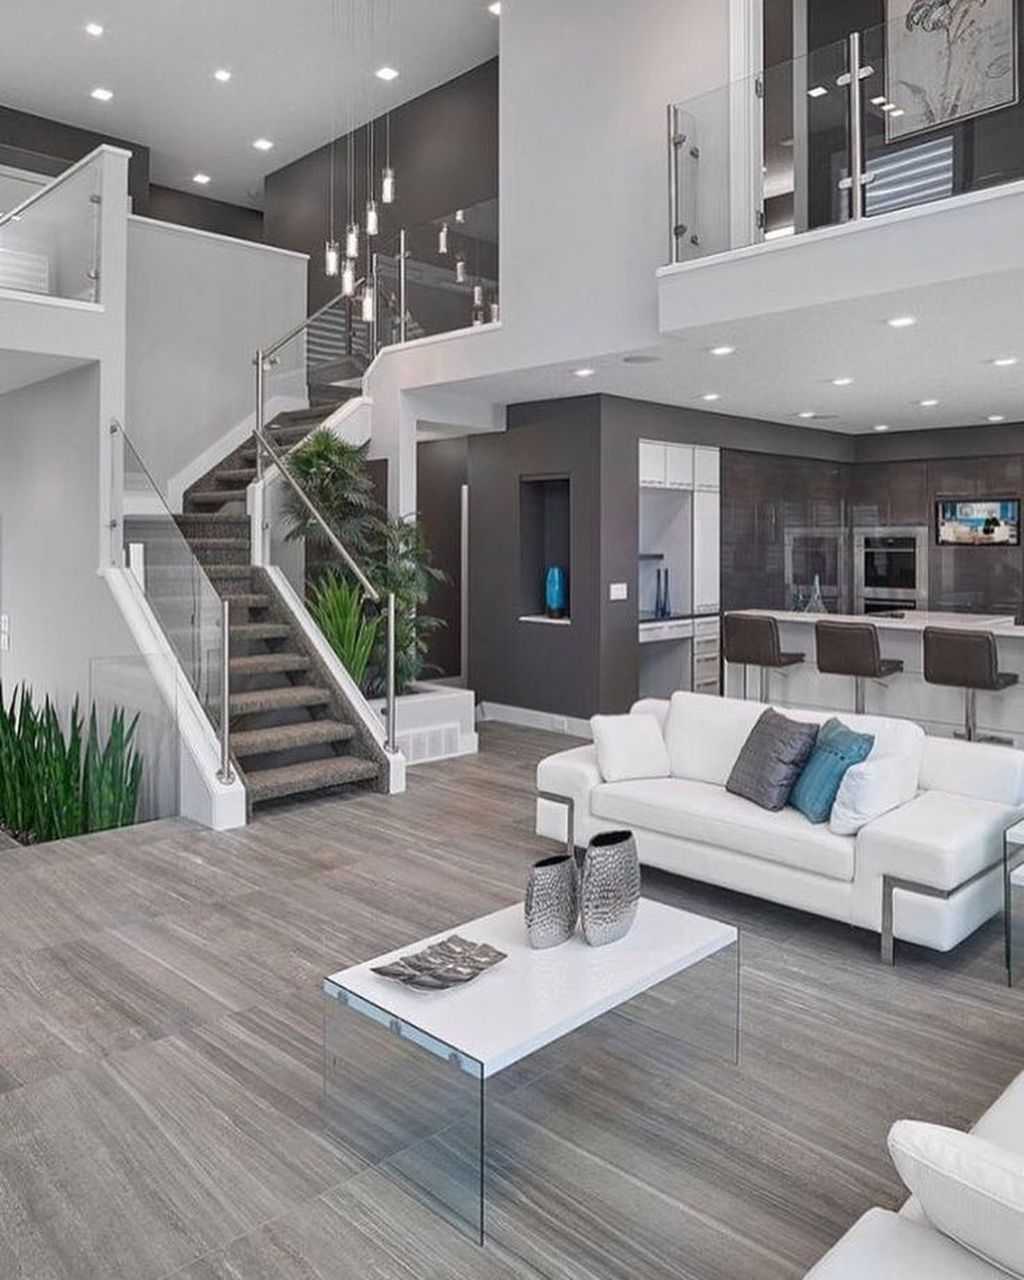 Modern Home Decor Tips To Make Any Home Look Fabulous In 2020 Modern House Design Minimal Interior Design House Interior